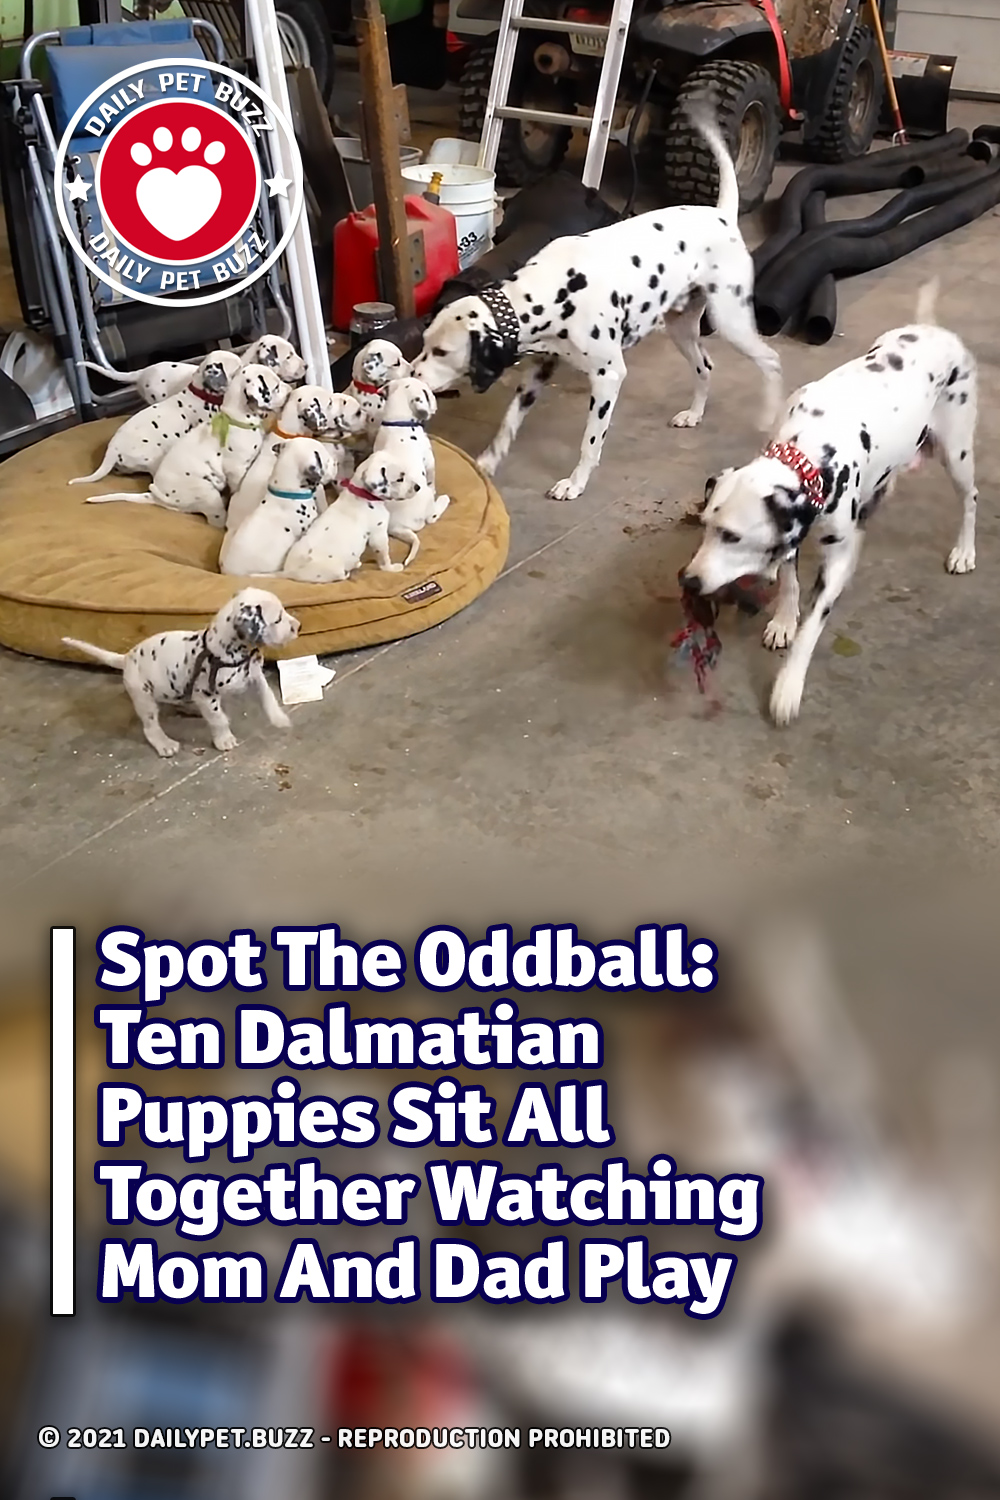 Spot The Oddball: Ten Dalmatian Puppies Sit All Together Watching Mom And Dad Play